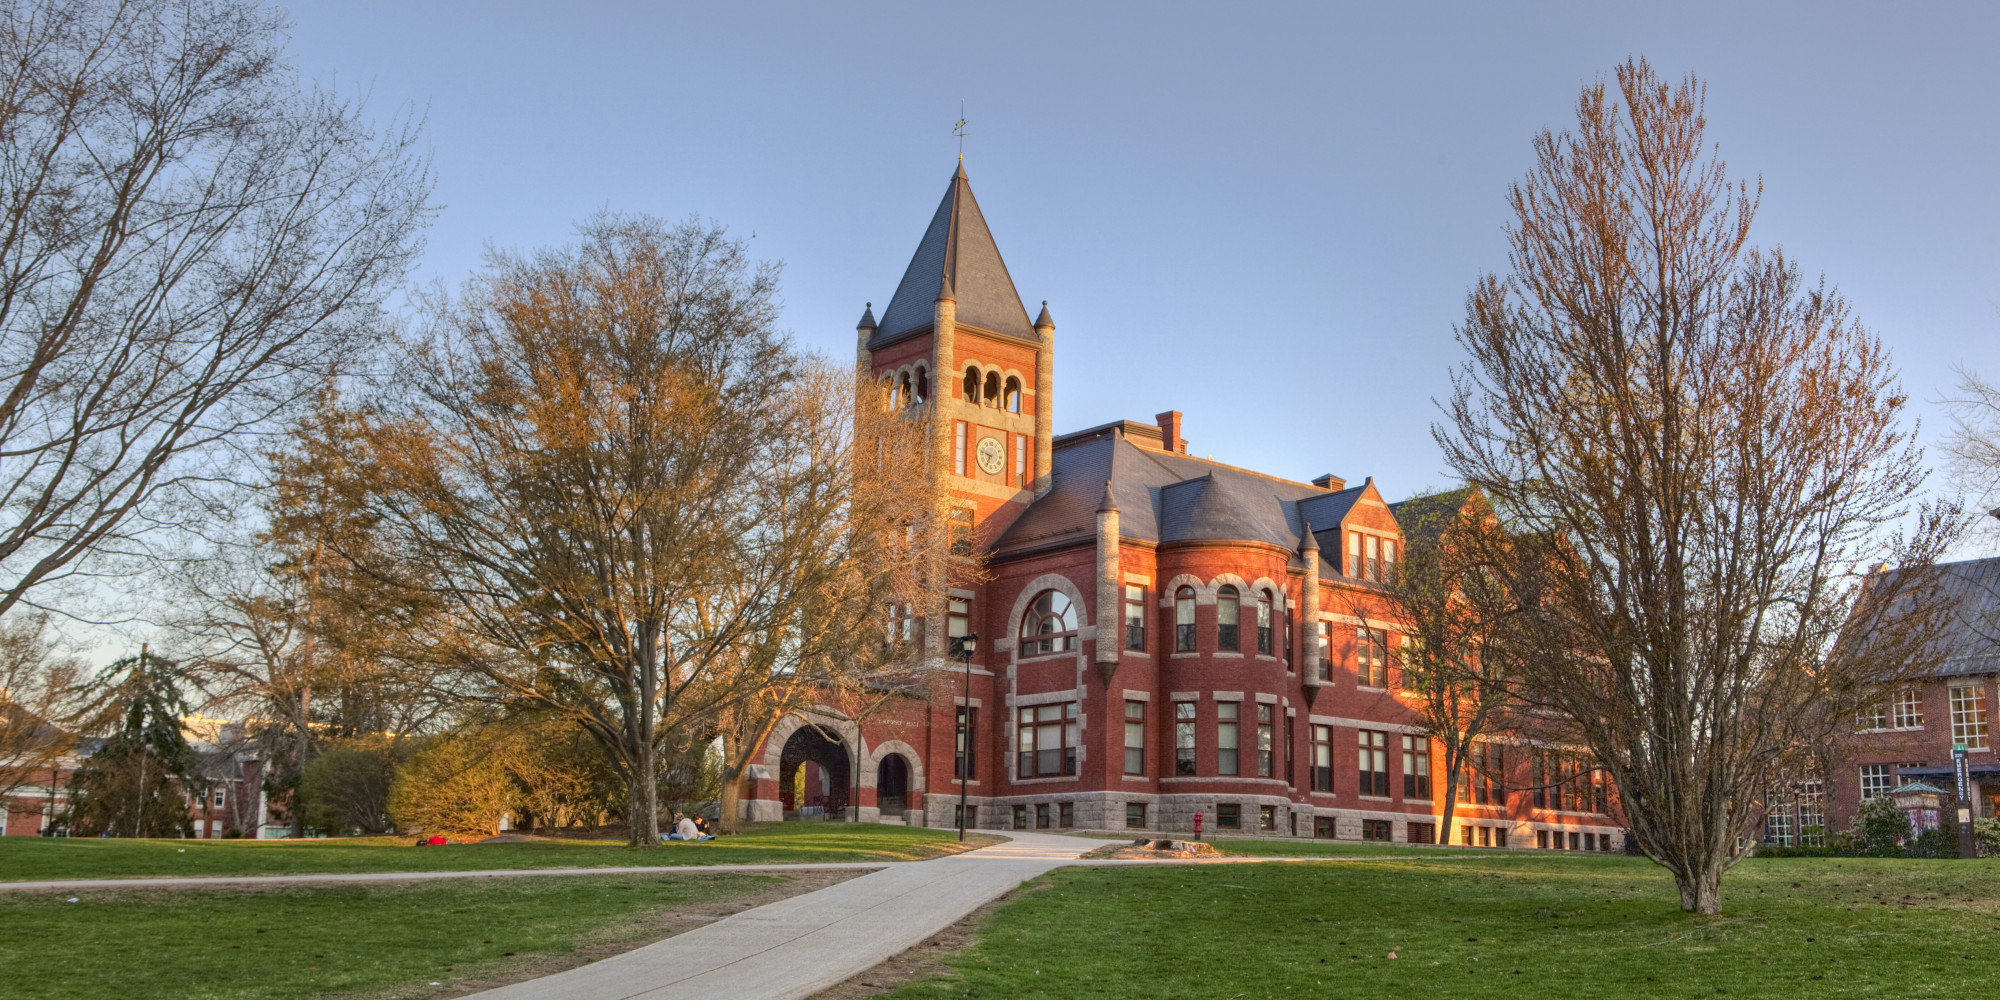 university new hampshire college essay Compare colleges: university of new hampshire-main campus ($30,256 usd out-of-state, 786% acceptance rate) vs keene state college ($21,408 usd out-of-state, 788.